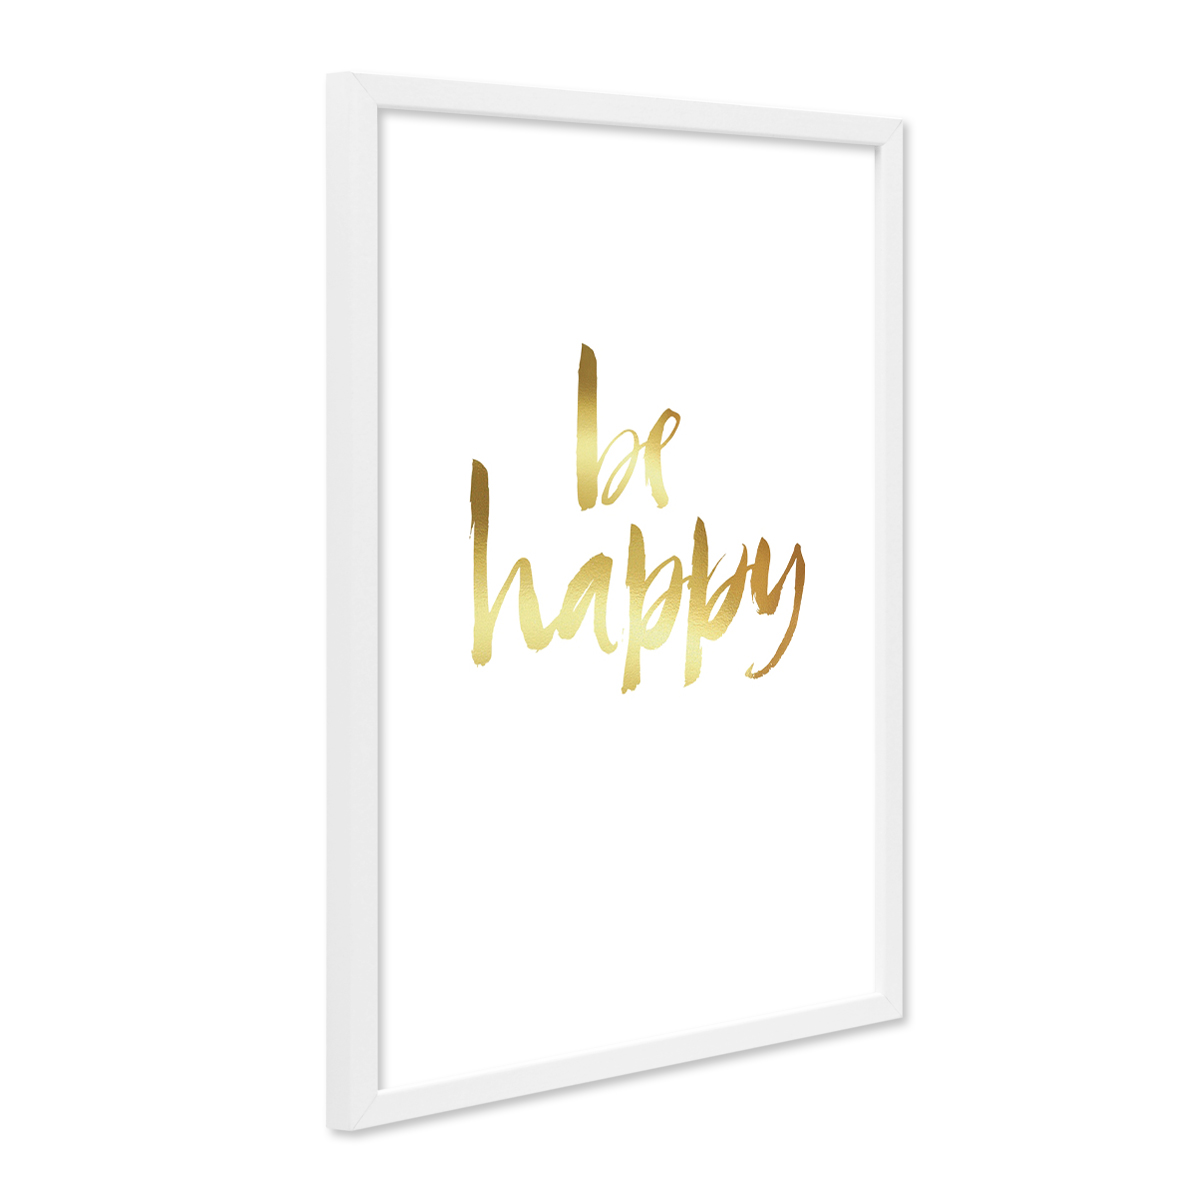 design poster mit bilderrahmen weiss 39 happy gold 39 30x40 cm goldaufdruck motiv spruch typograhie. Black Bedroom Furniture Sets. Home Design Ideas